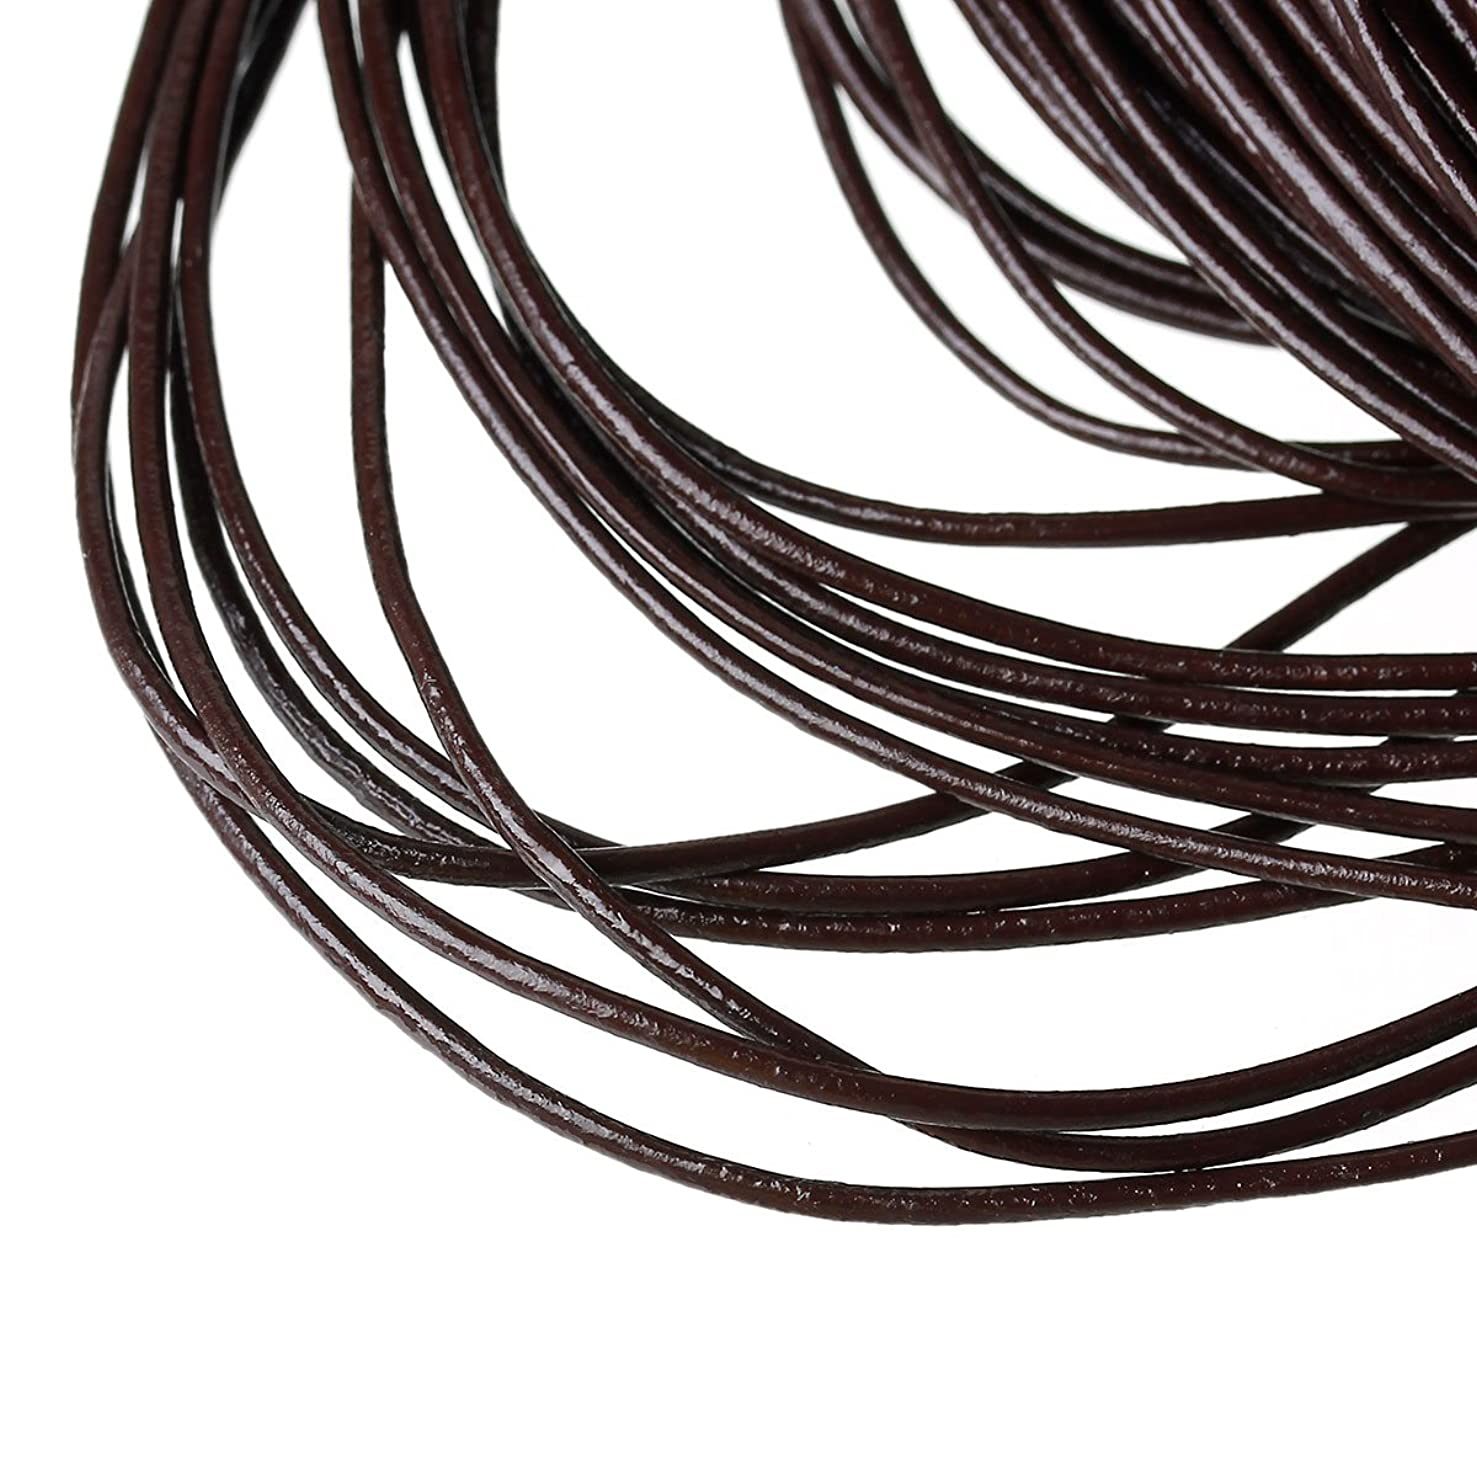 PEPPERLONELY Brand 10 Yard 1.5mm Genuine Coffee Round Leather Cords For Bracelet Necklace Beading Jewelry Making